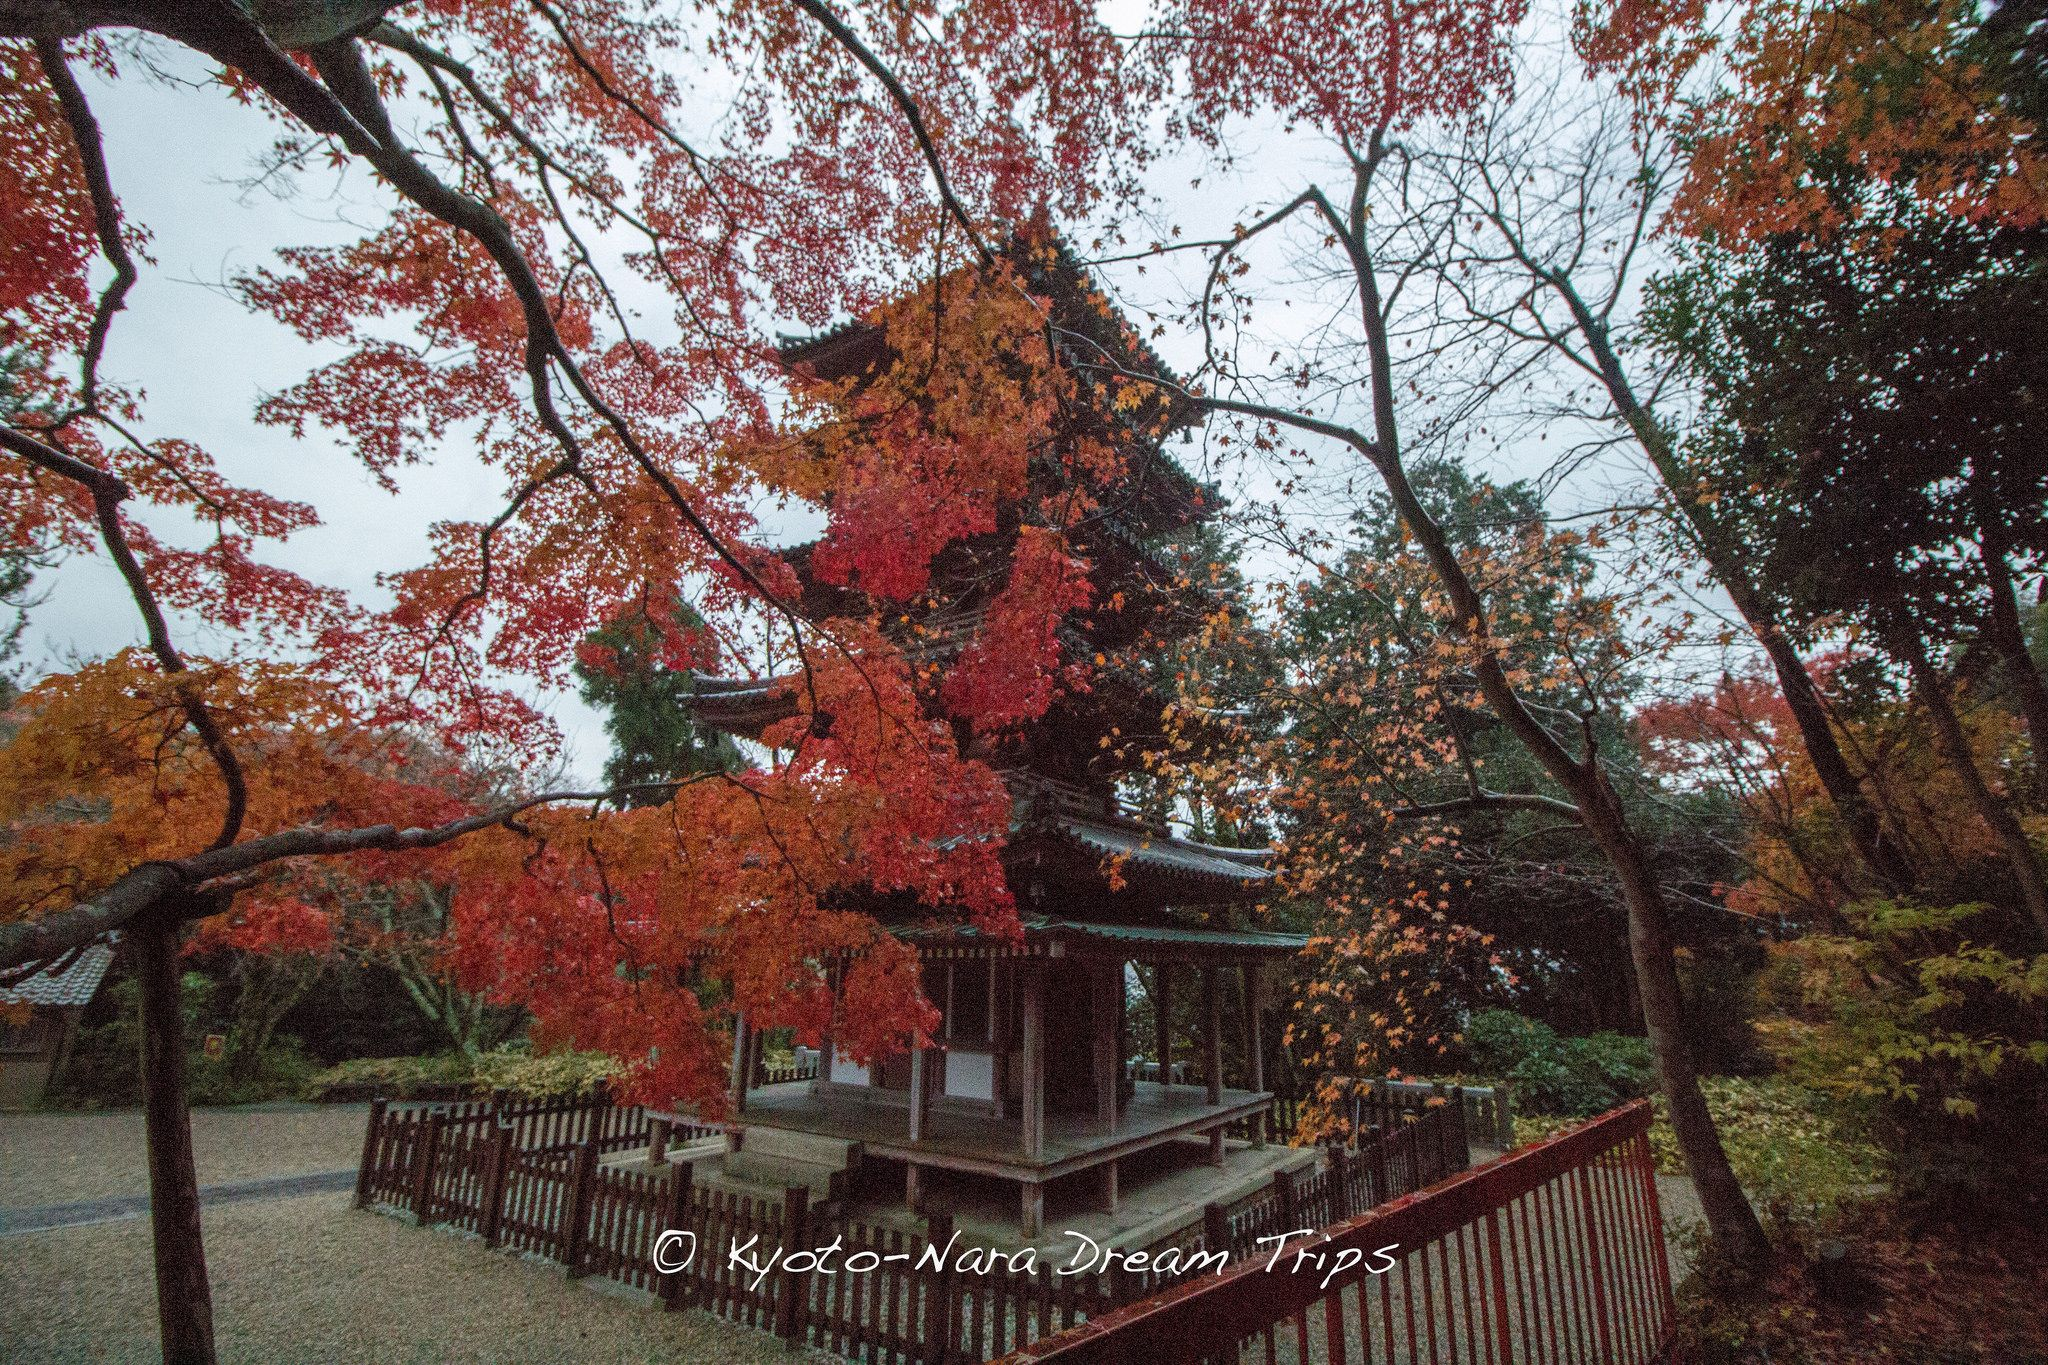 https://flic.kr/p/AoErK3 | Kaijūsen-ji, Autumn 2014, Kizugawa, Kyoto. | The Five-Storey Pagoda (五重塔-gojūnotō) of Kaijūsen-ji, during the autumn of 2014, in Kizugawa, Kyoto-fu. The pagoda dates back to the early Kamakura period (鎌倉時代; 1185–1333) and is classified as a national treasure of Japan.